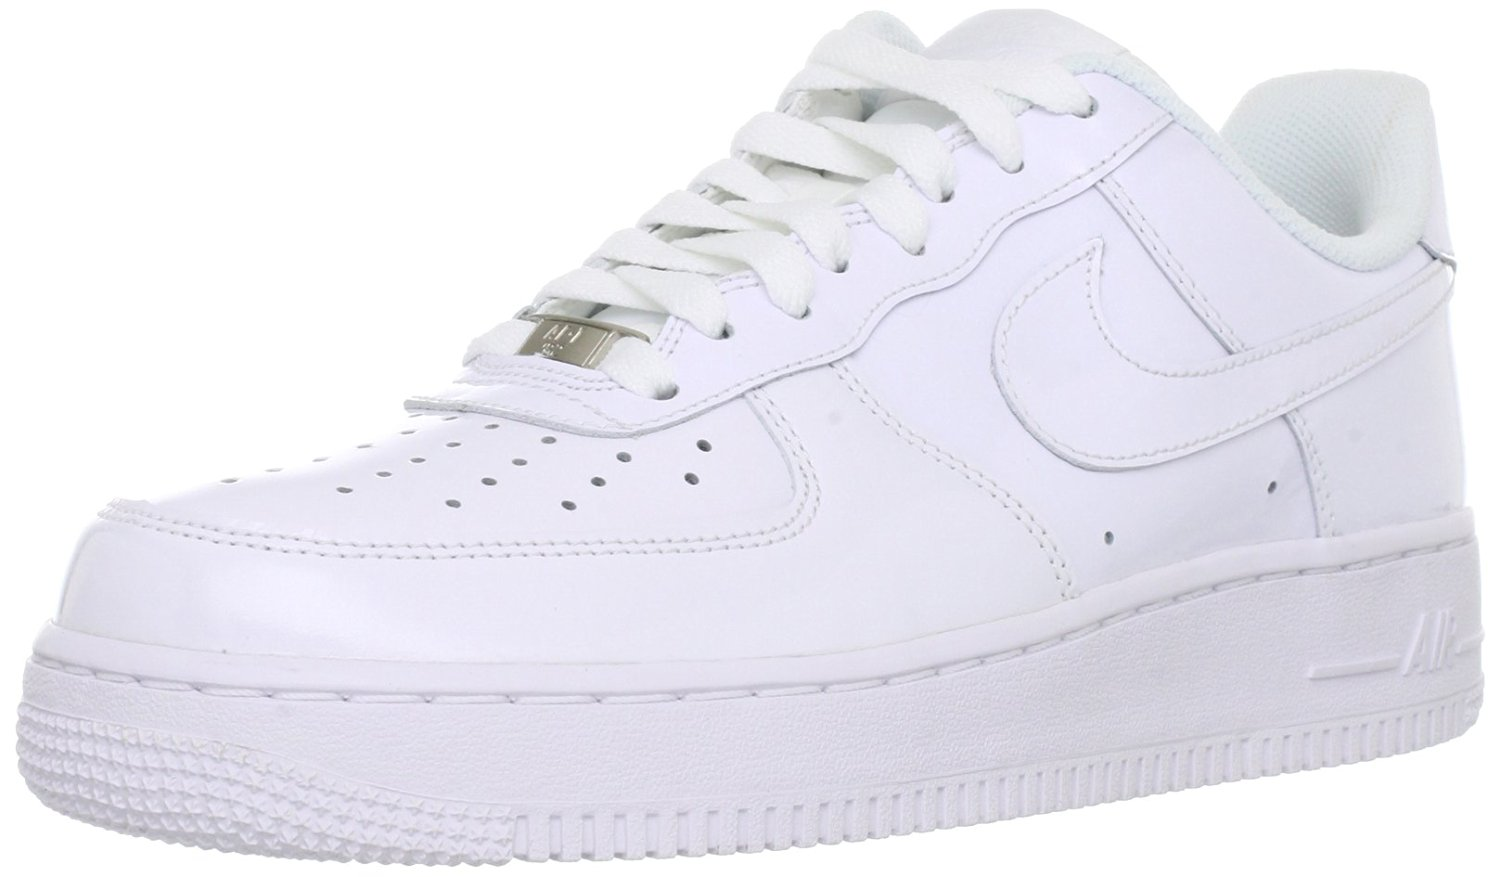 arrives aa123 1ac61 Get Quotations · Nike Men s Air Force 1, WHITE WHITE-WHITE